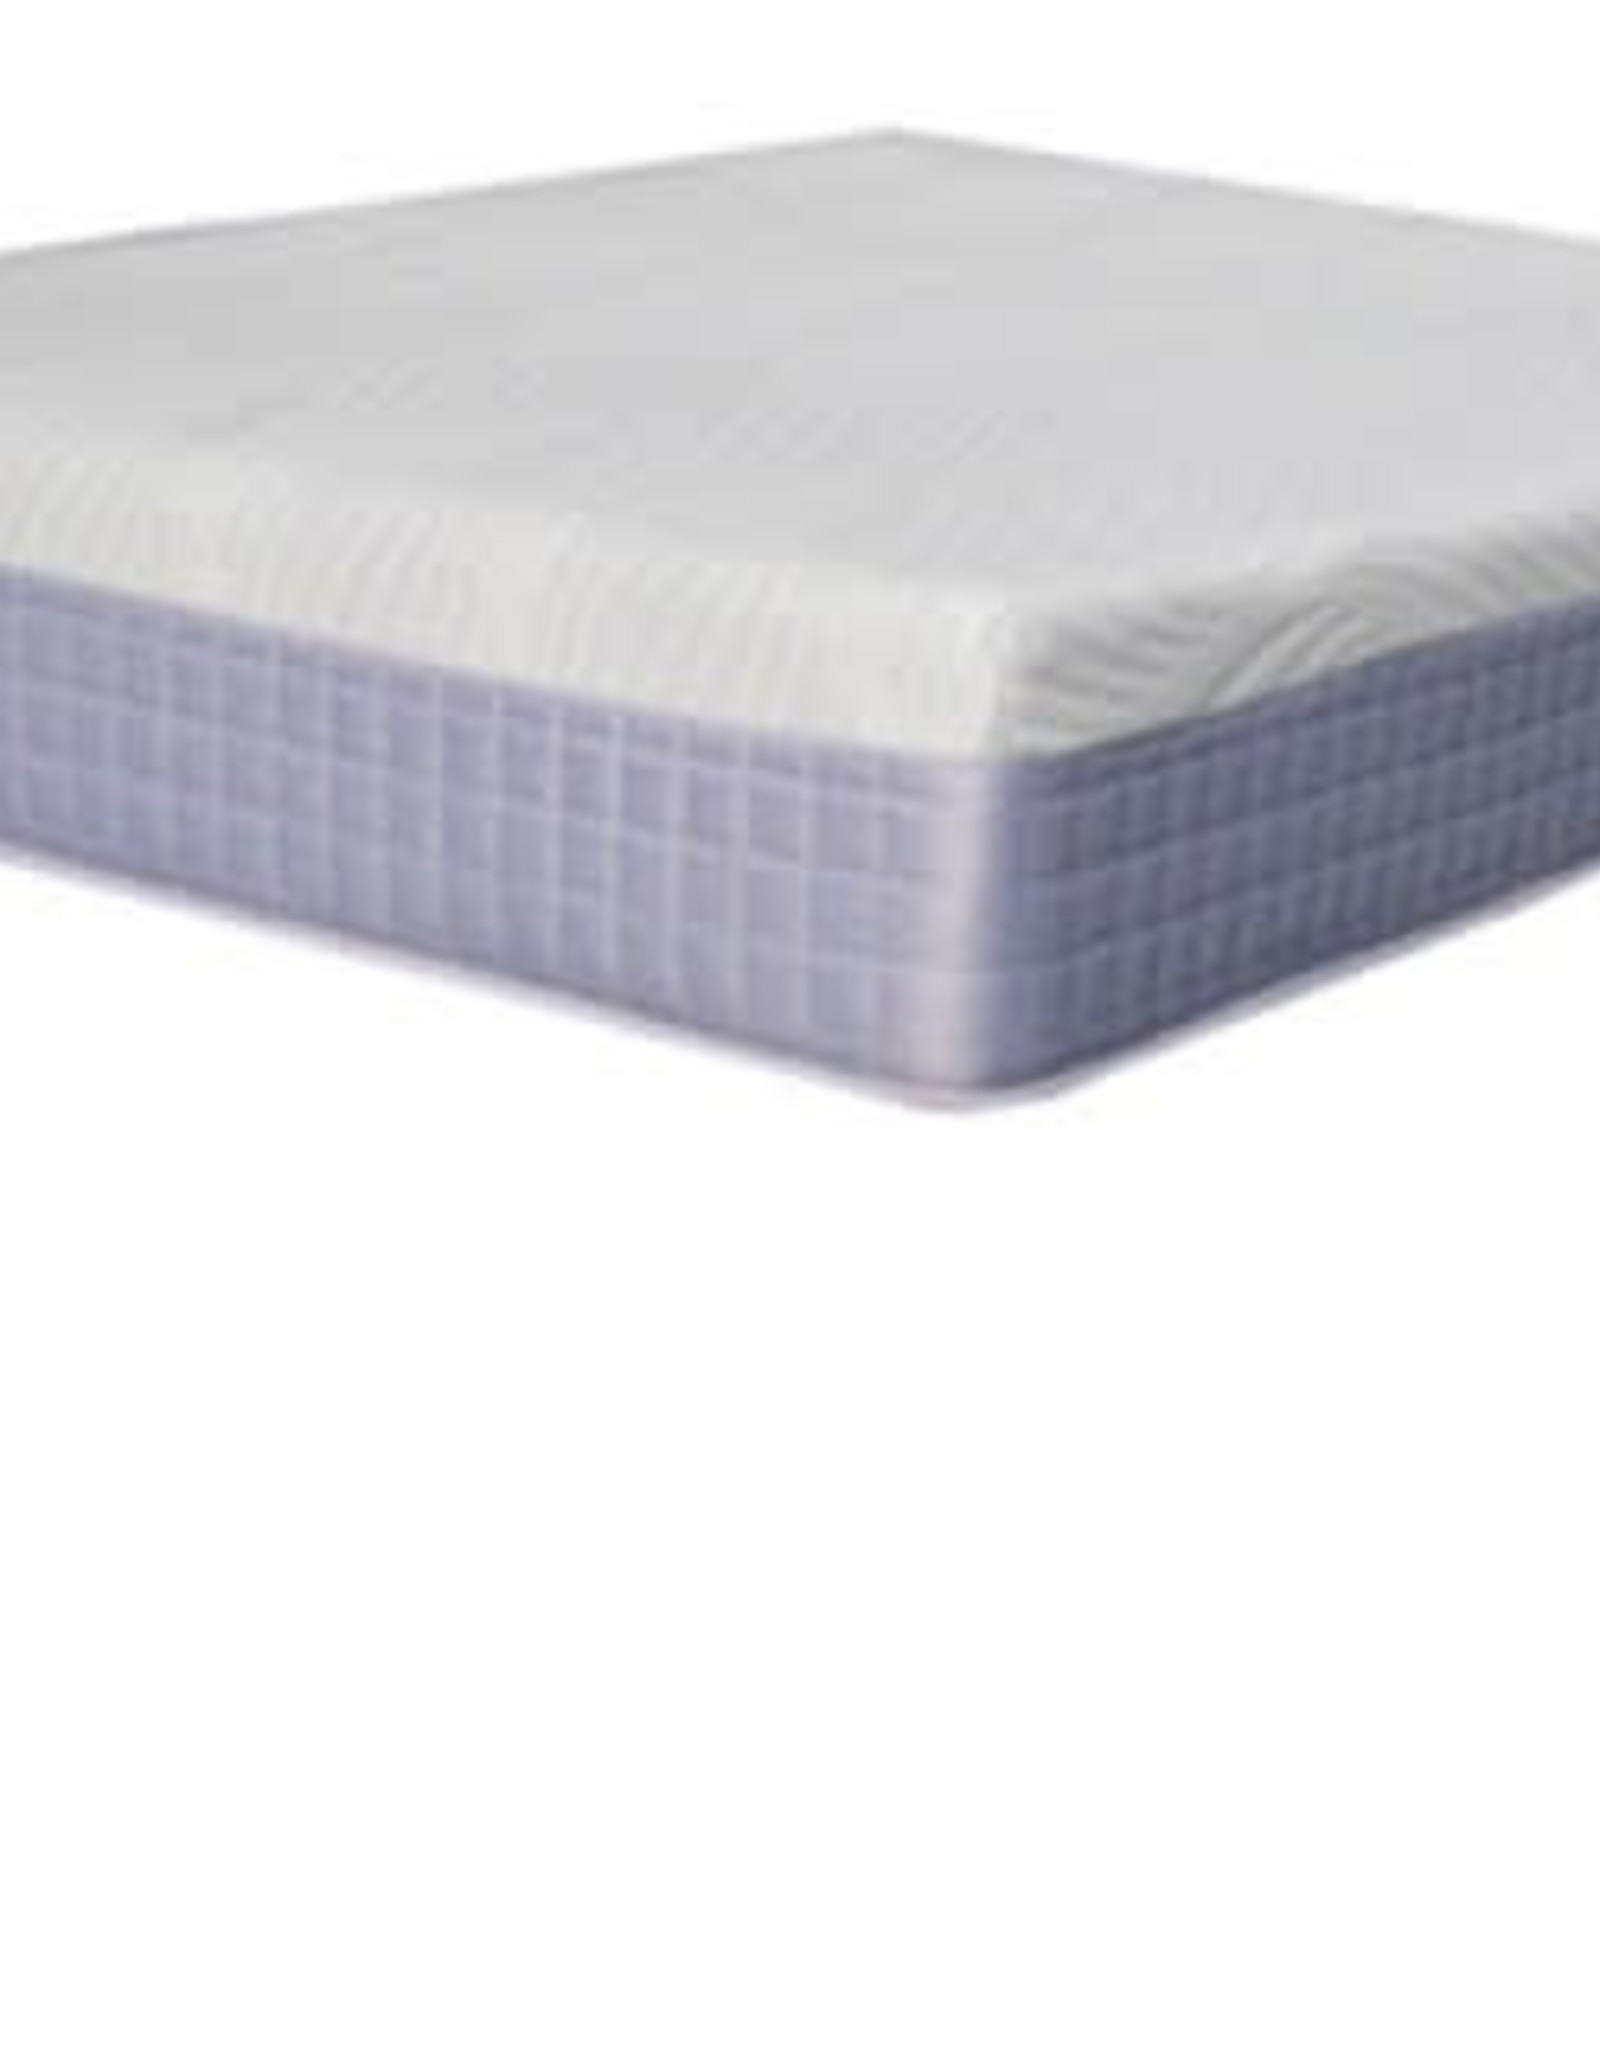 Tranquility Hybrid RV Mattress